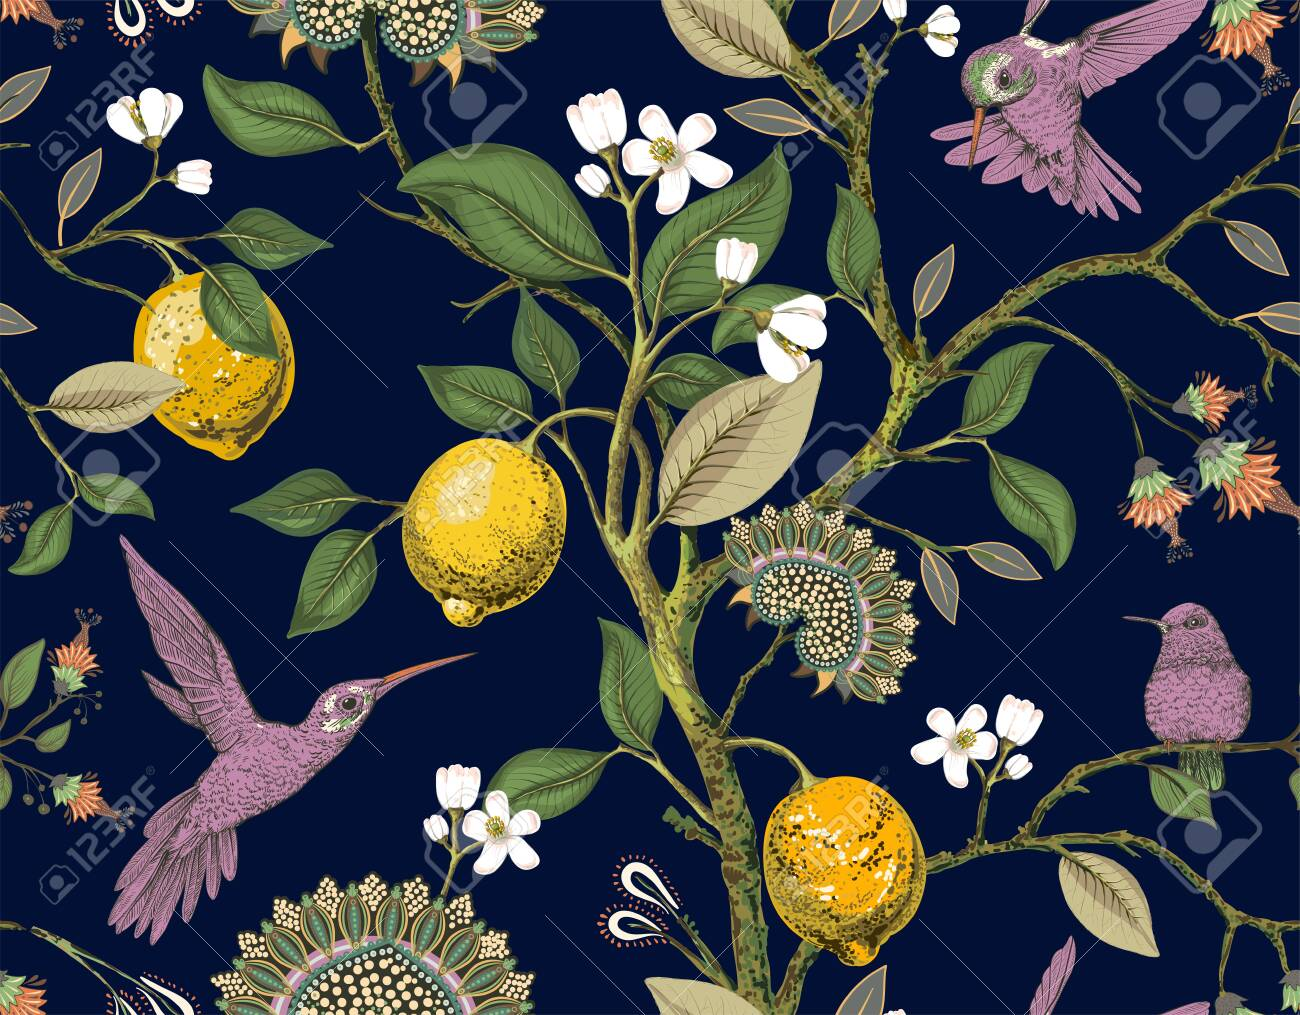 Floral Vector Seamless Pattern Botanical Wallpaper Plants